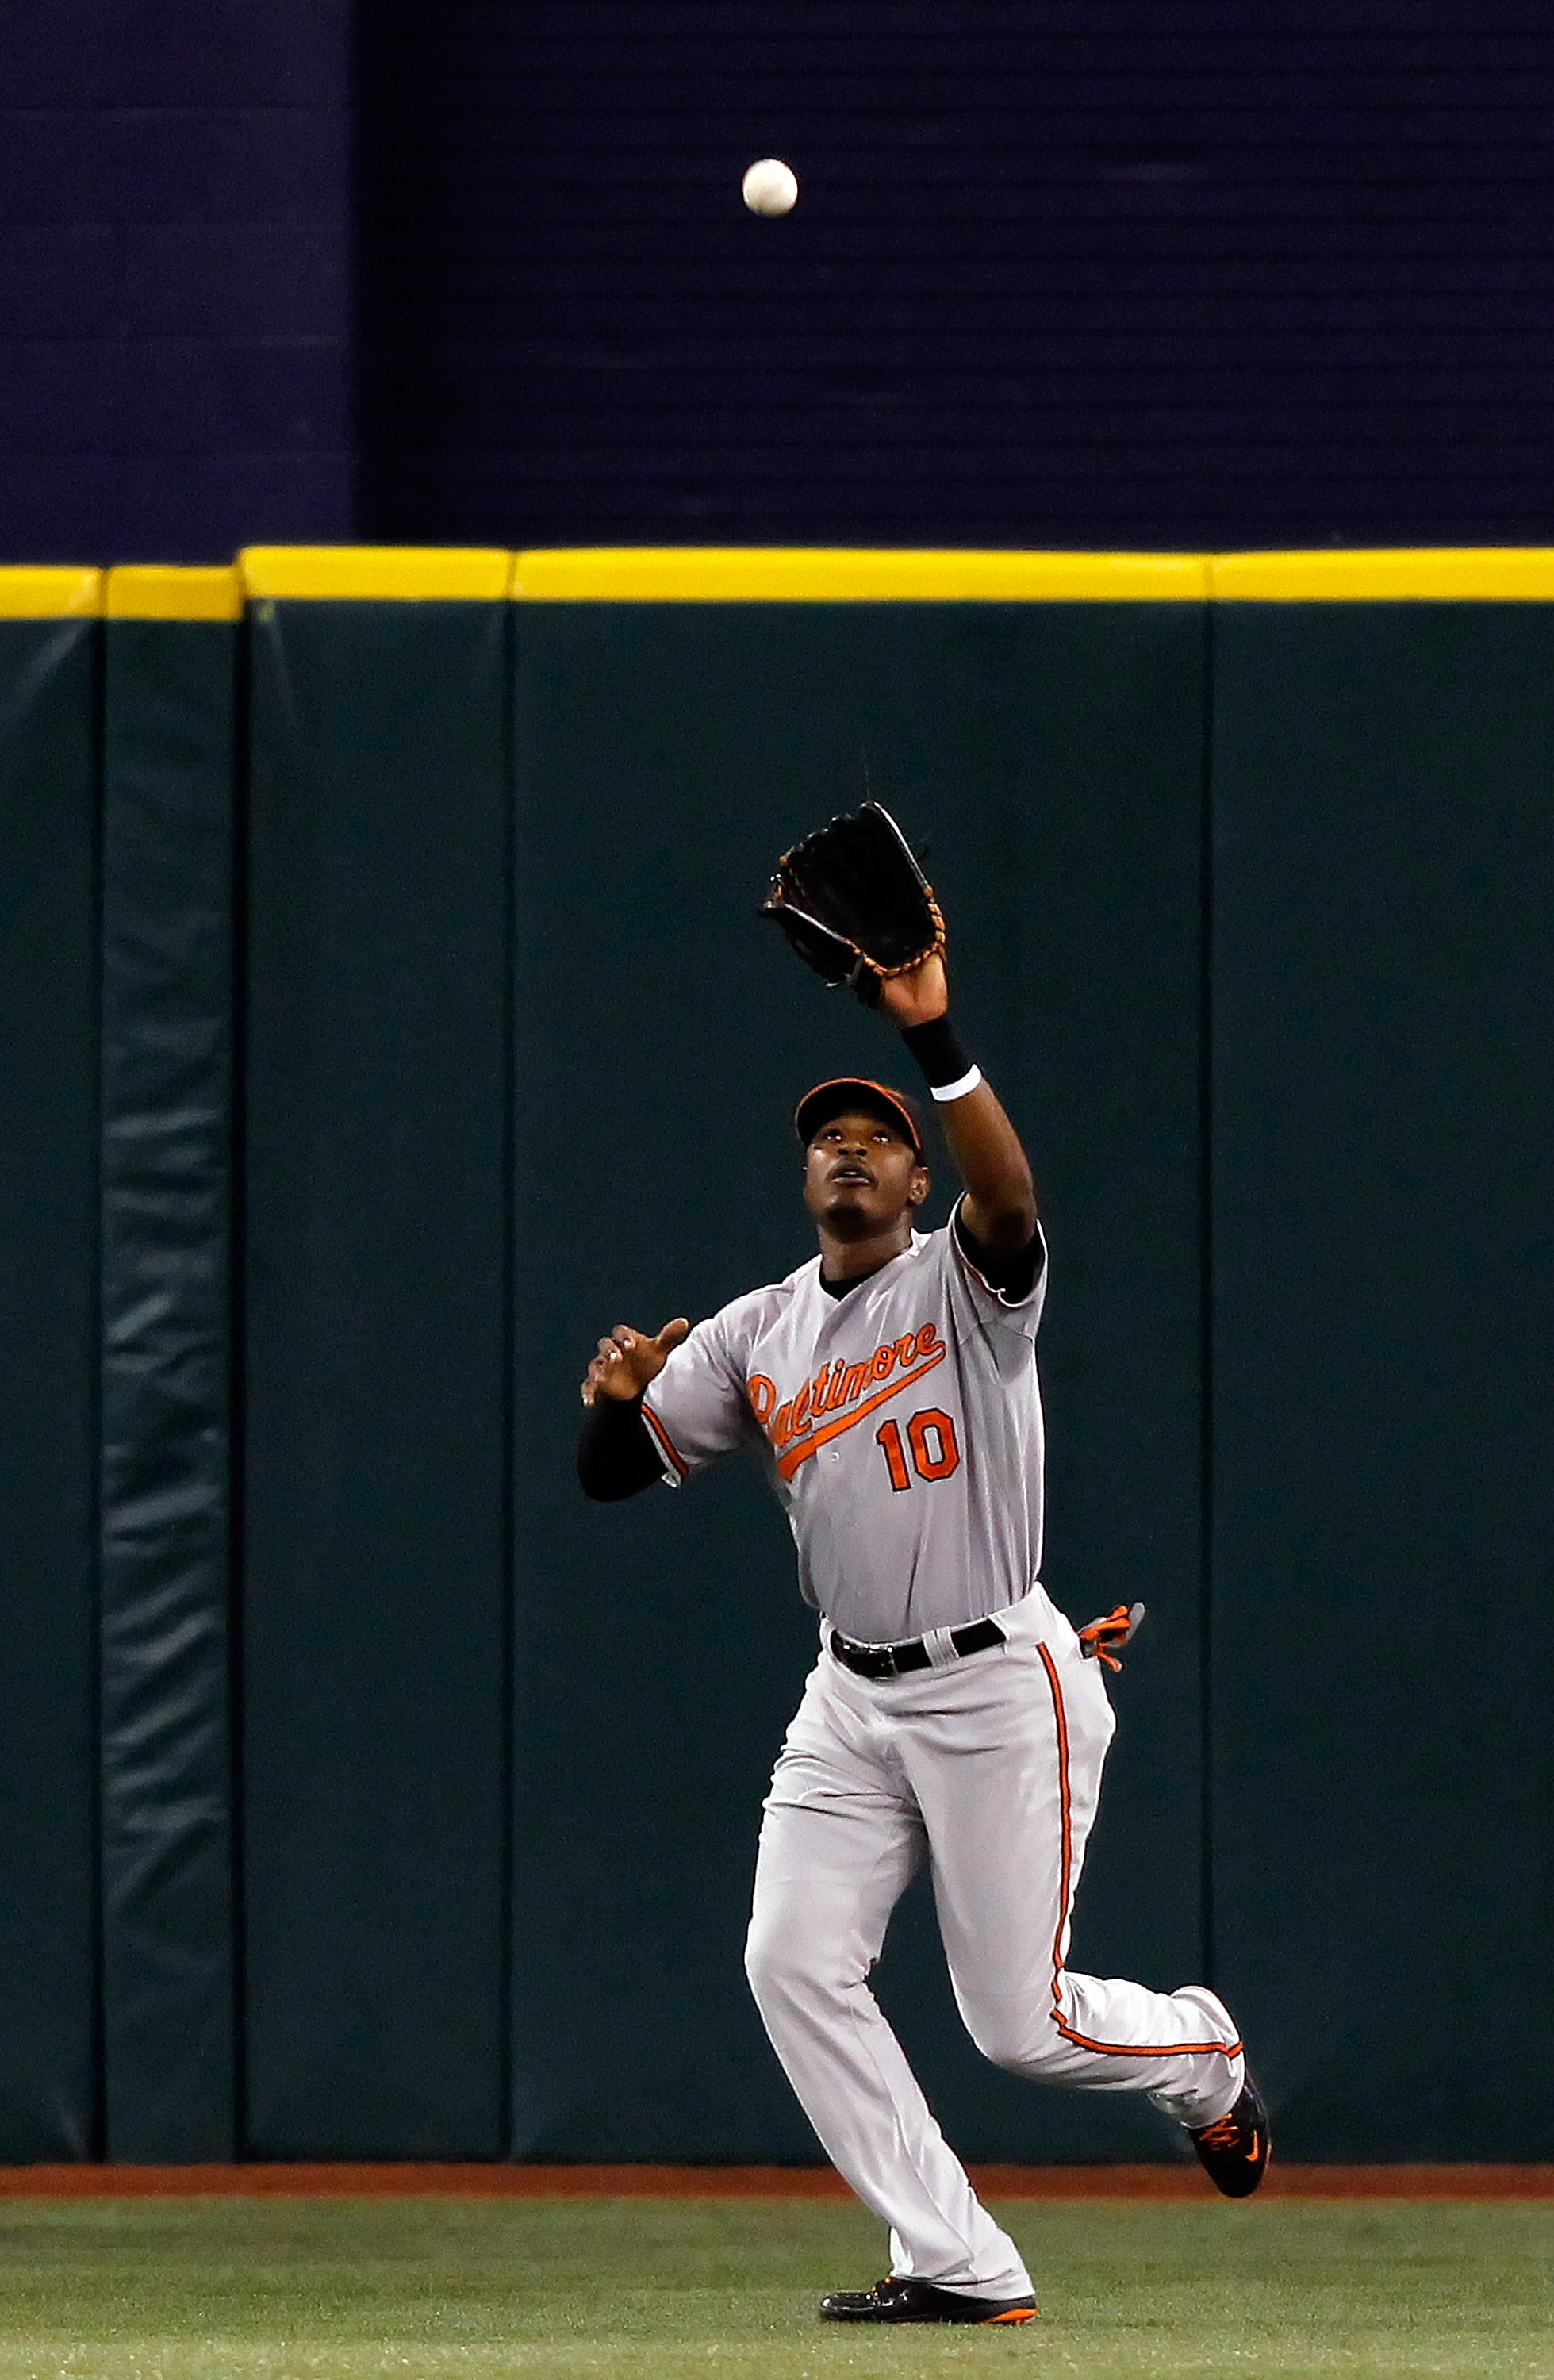 ST. PETERSBURG, FL - SEPTEMBER 28:  Outfielder Adam Jones #10 of the Baltimore Orioles catches a fly ball against the Tampa Bay Rays during the game at Tropicana Field on September 28, 2010 in St. Petersburg, Florida.  (Photo by J. Meric/Getty Images)